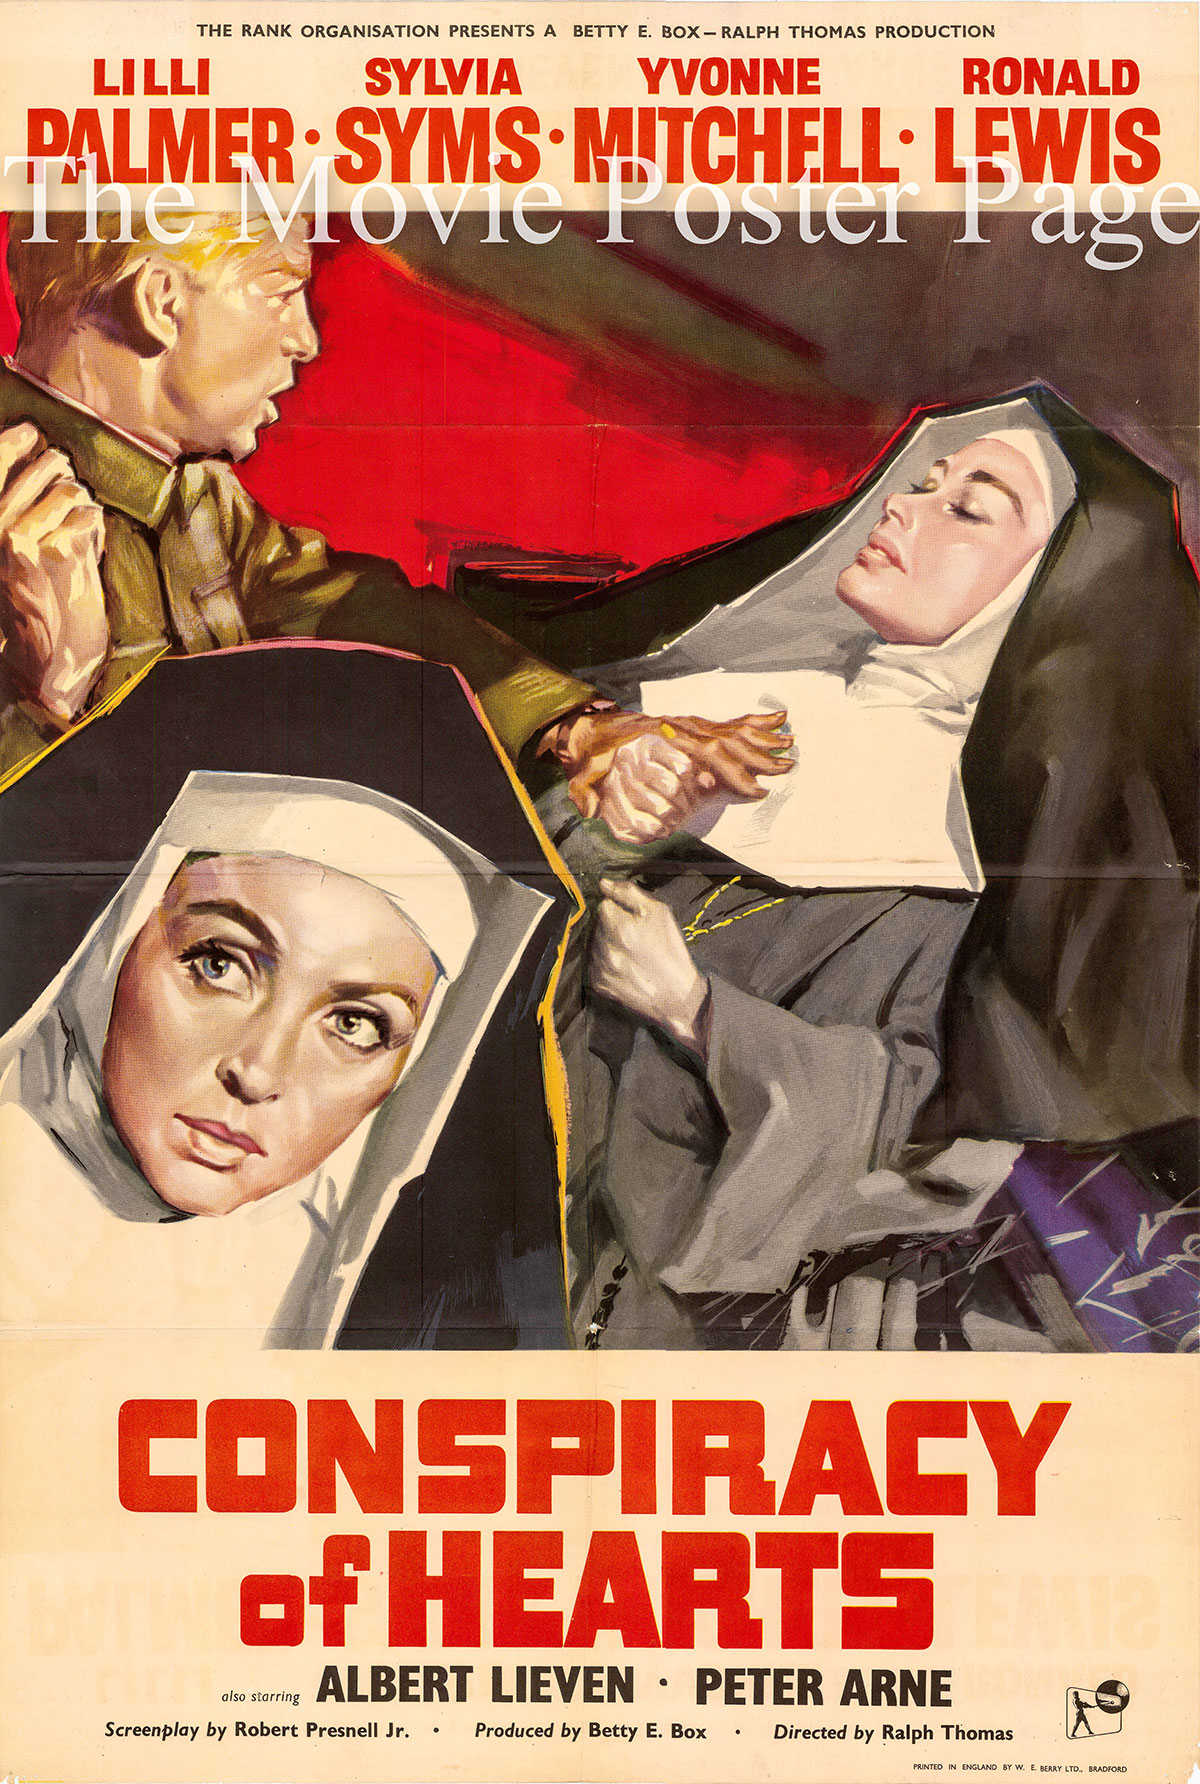 Pictured is a UK one-sheet poster for the 1960 Ralph Thomas film Conspiracy of Hearts starring Lilli Palmer.